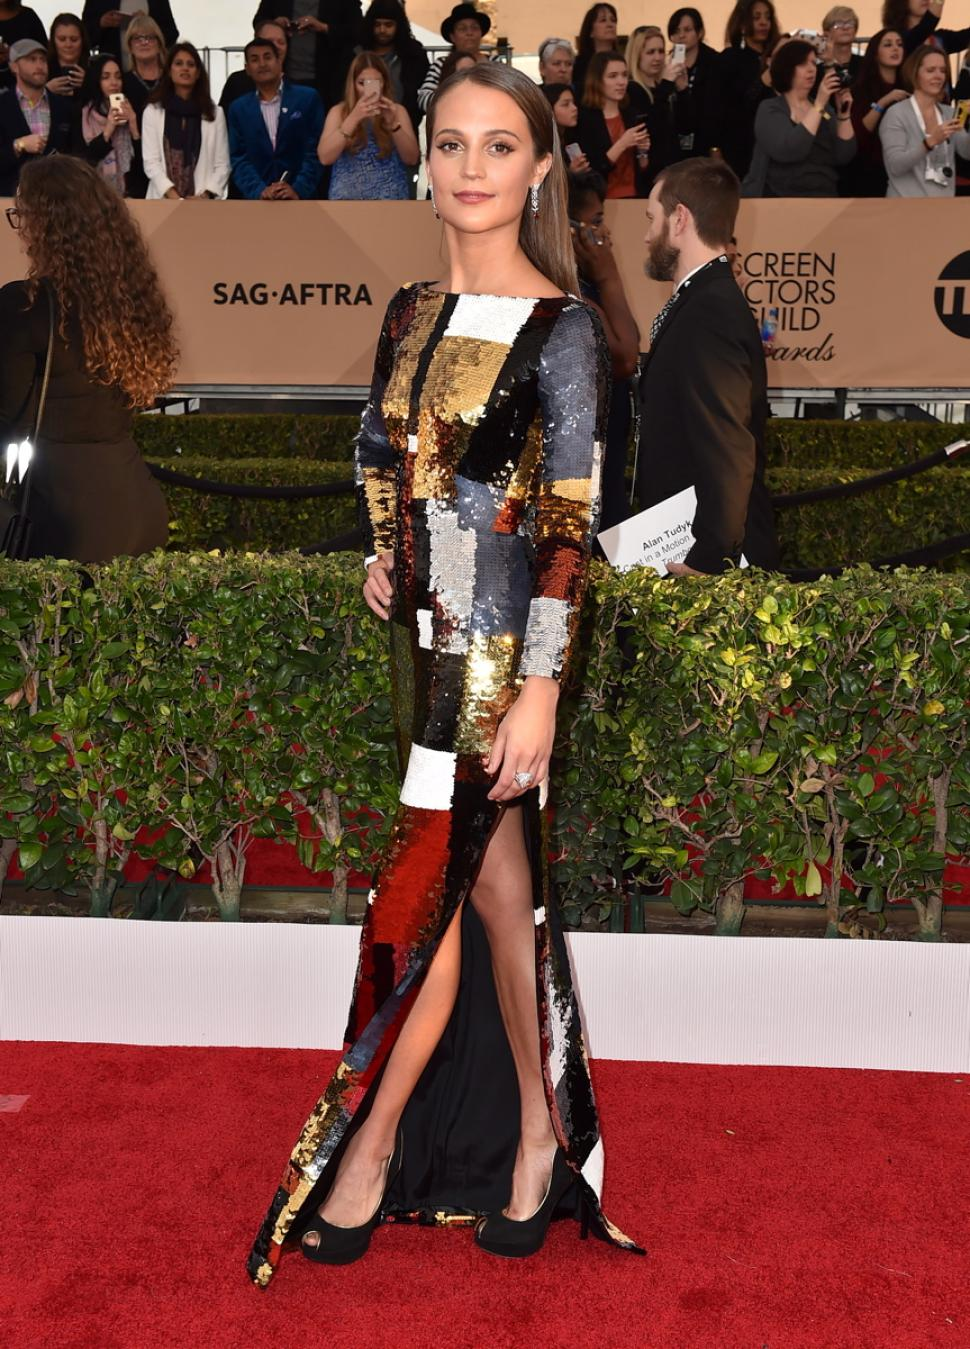 2016: SAG Awards Red Carpet's Best Dressed